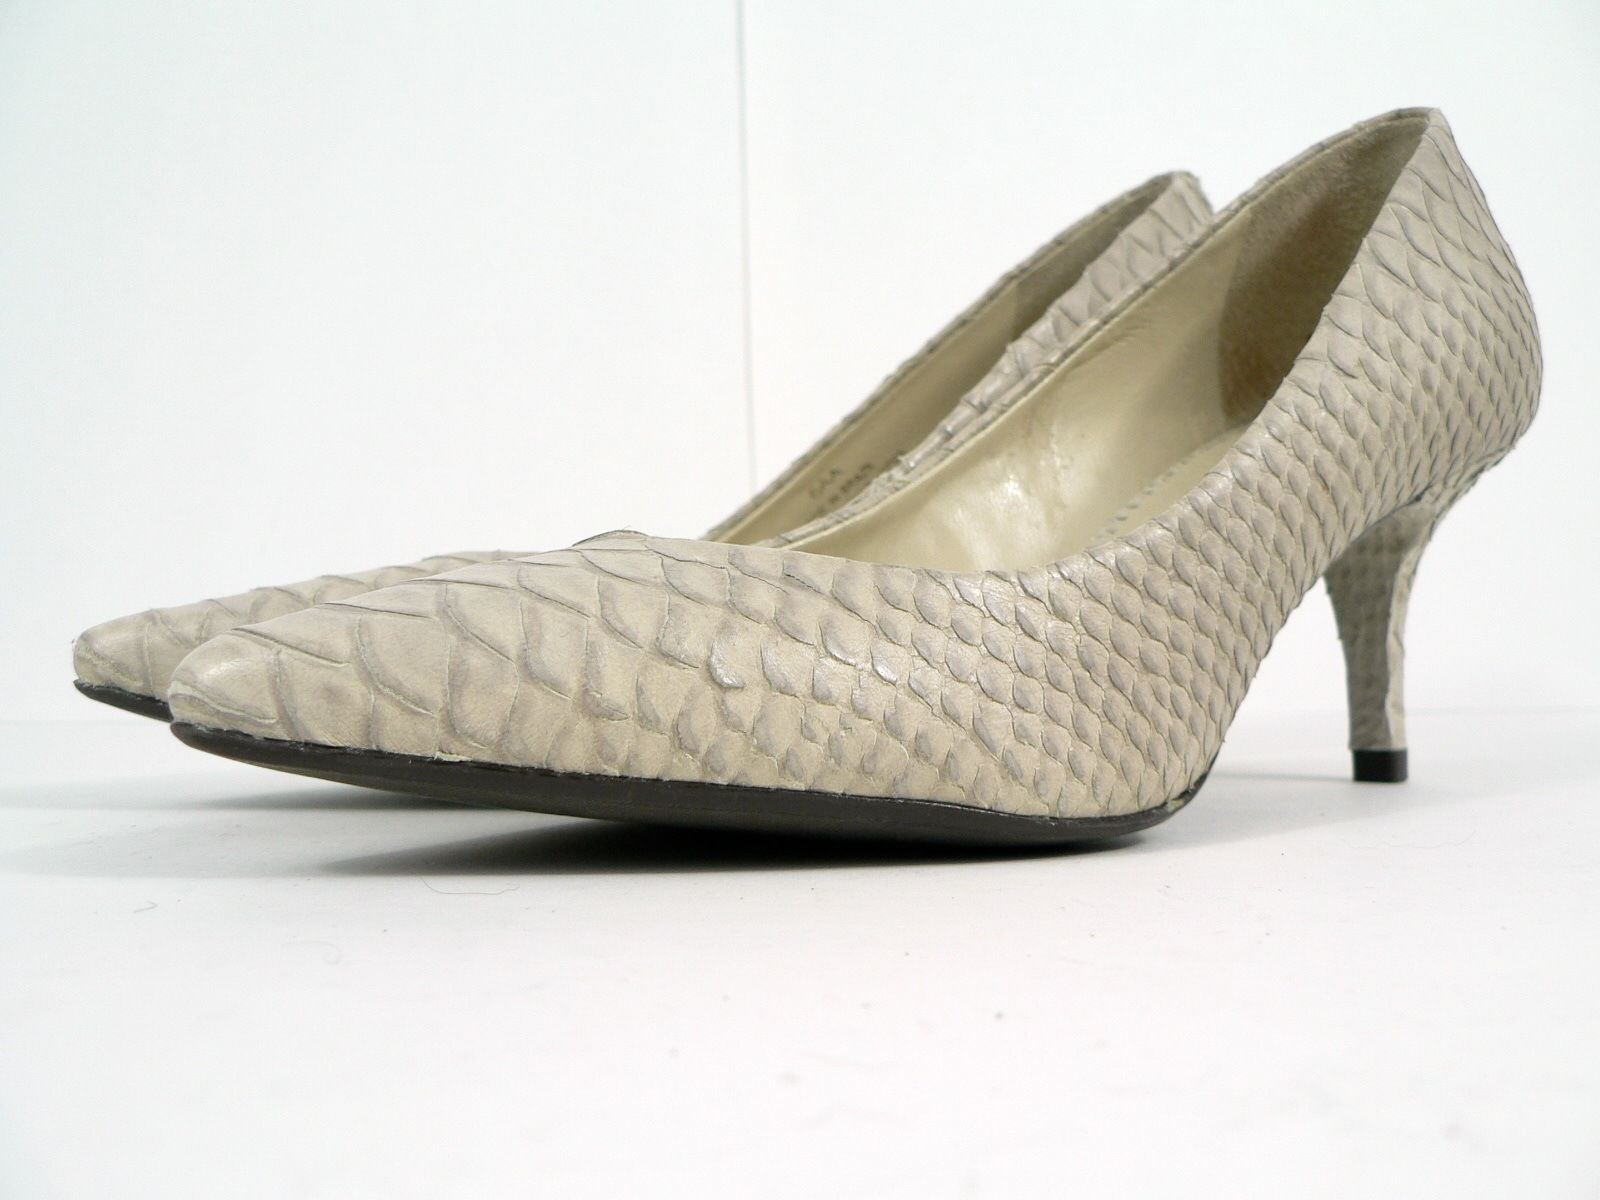 a319c78c18f Talbots Light Gray Leather Faux Snakeskin and 11 similar items